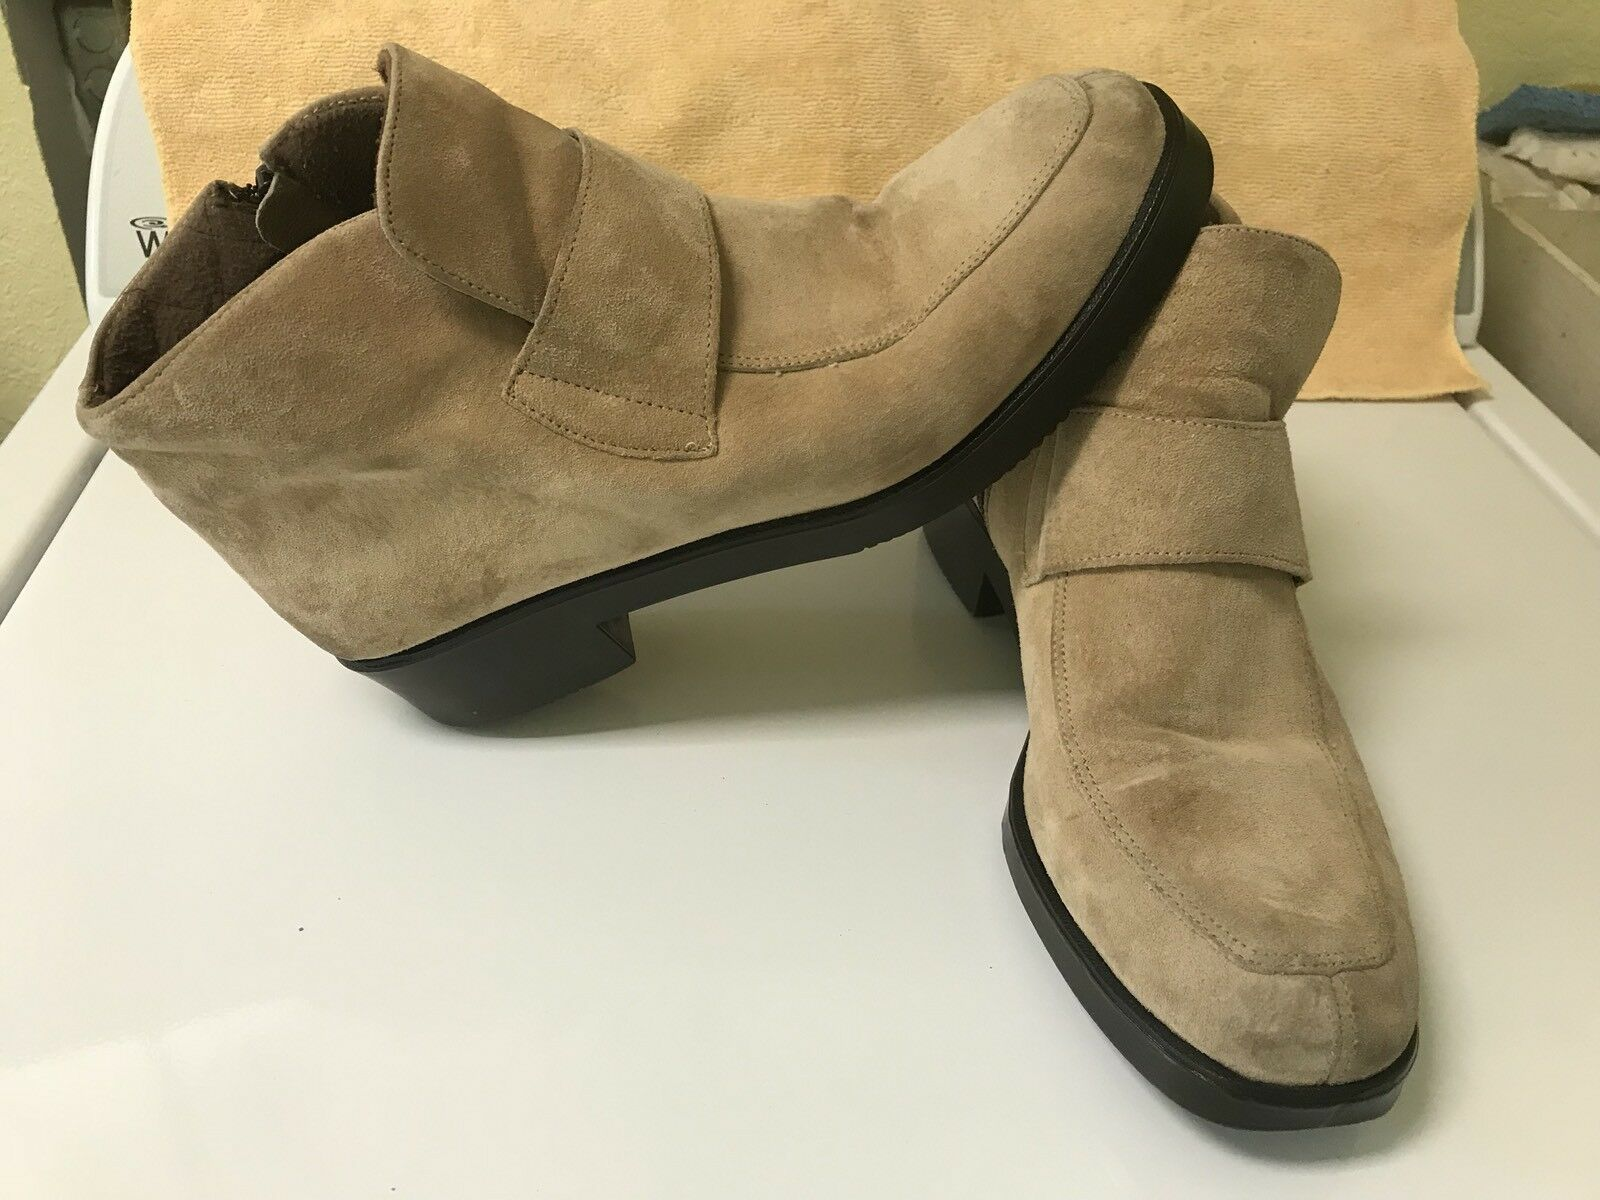 Hush Puppies Tan Ankle Boot Booties Suede Waterproof Quilted Zip Strap size 11 m